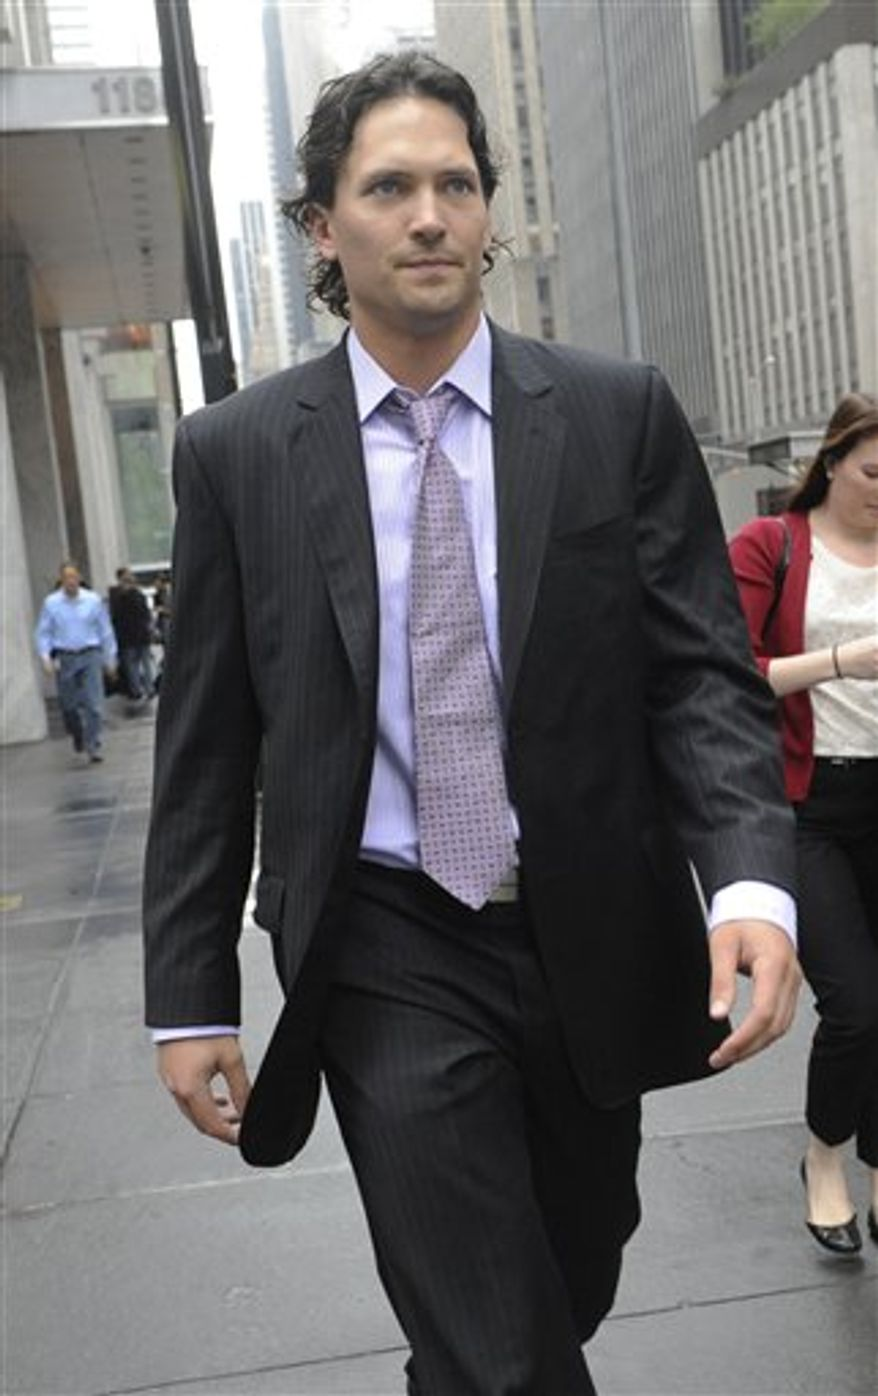 Winnipeg Jets' Ron Hainsey takes a break from a bargaining session at NHL headquarters in New York, Friday, Sept. 28, 2012. (AP Photo/Louis Lanzano)